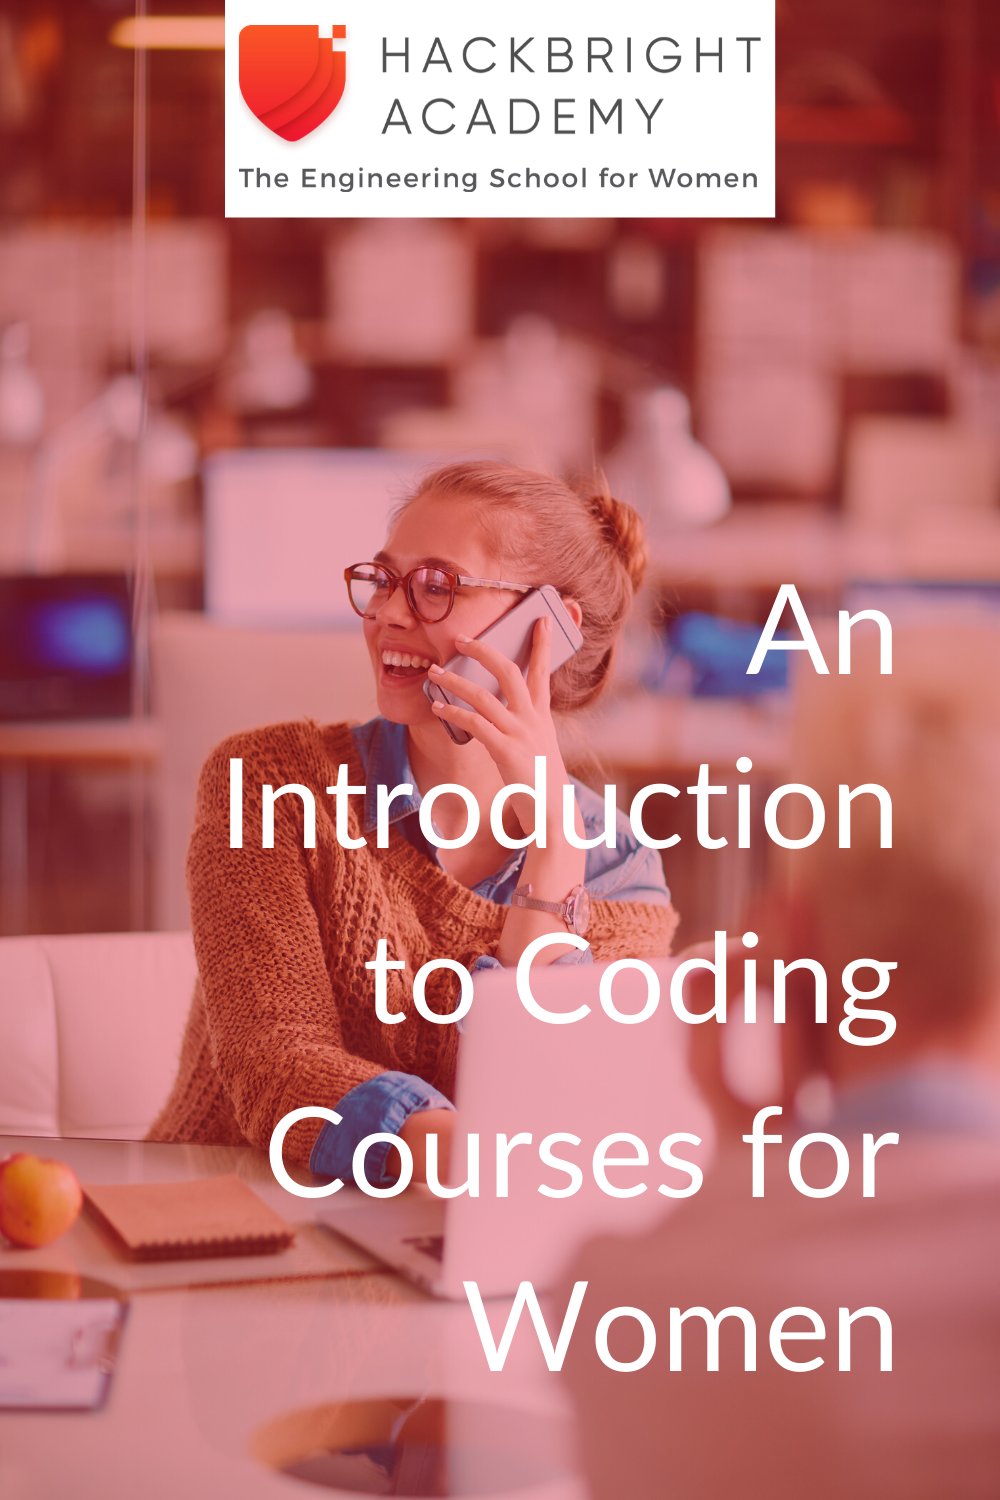 An Introduction to Coding Courses for Women